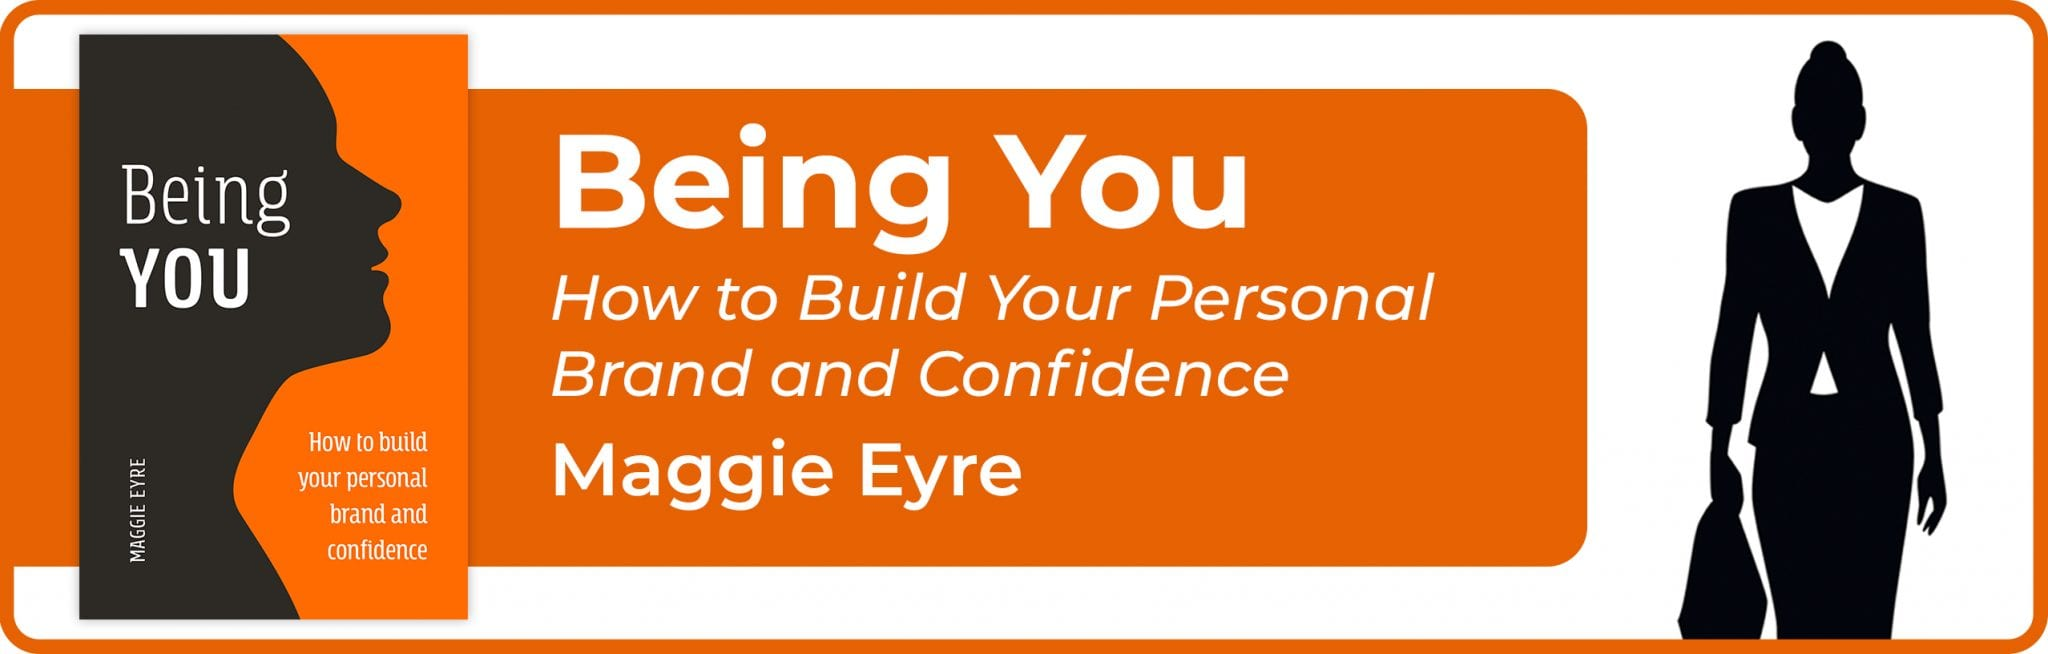 Being You book banner